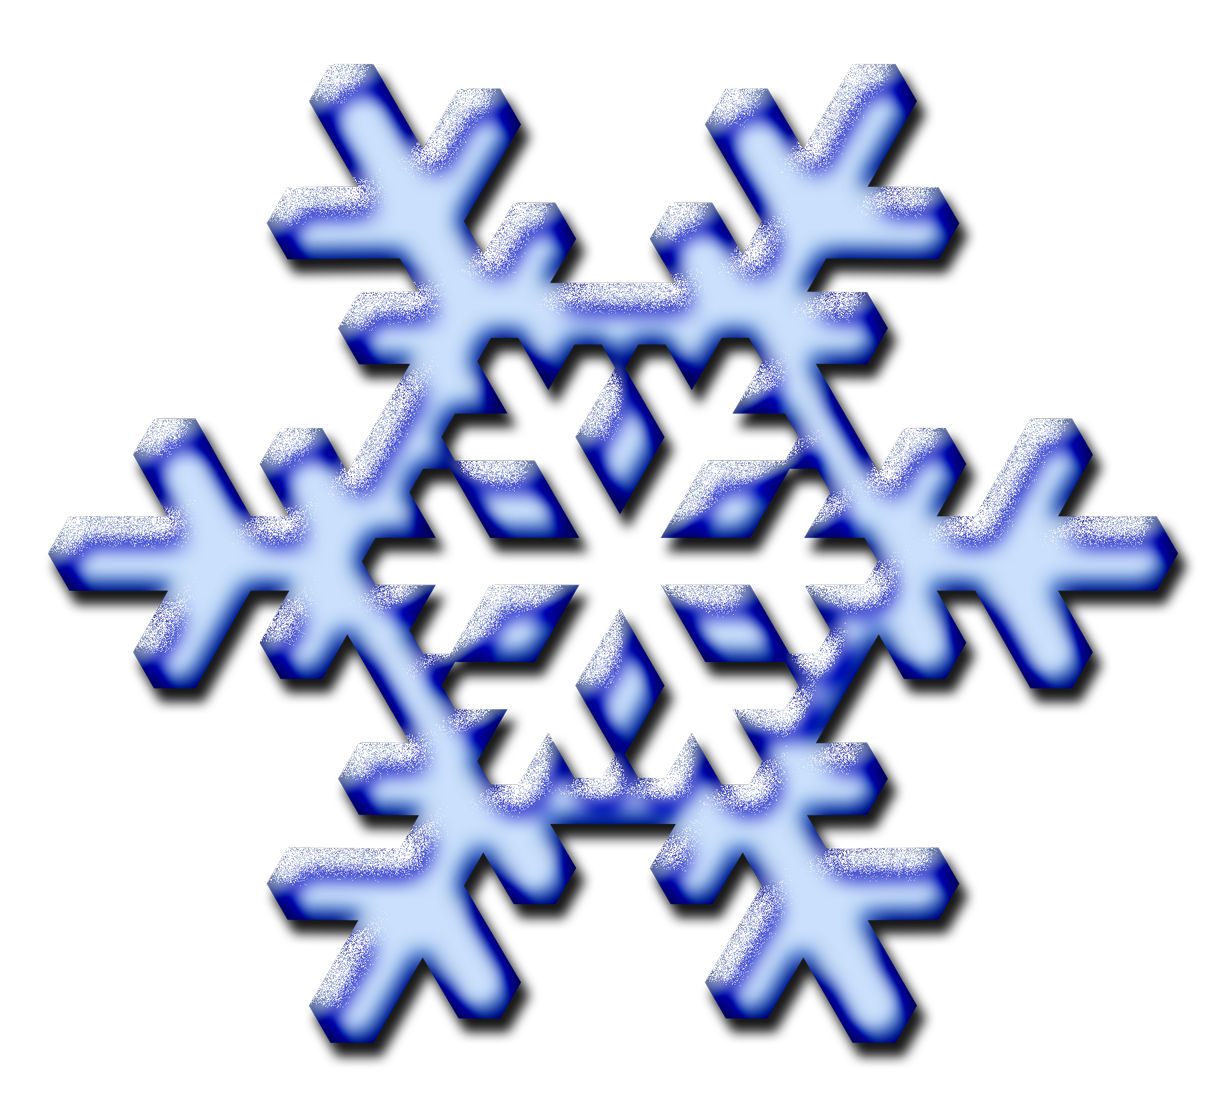 Falling snowflake clipart blue vector download Blue Snowflakes Clipart | Free download best Blue Snowflakes Clipart ... vector download